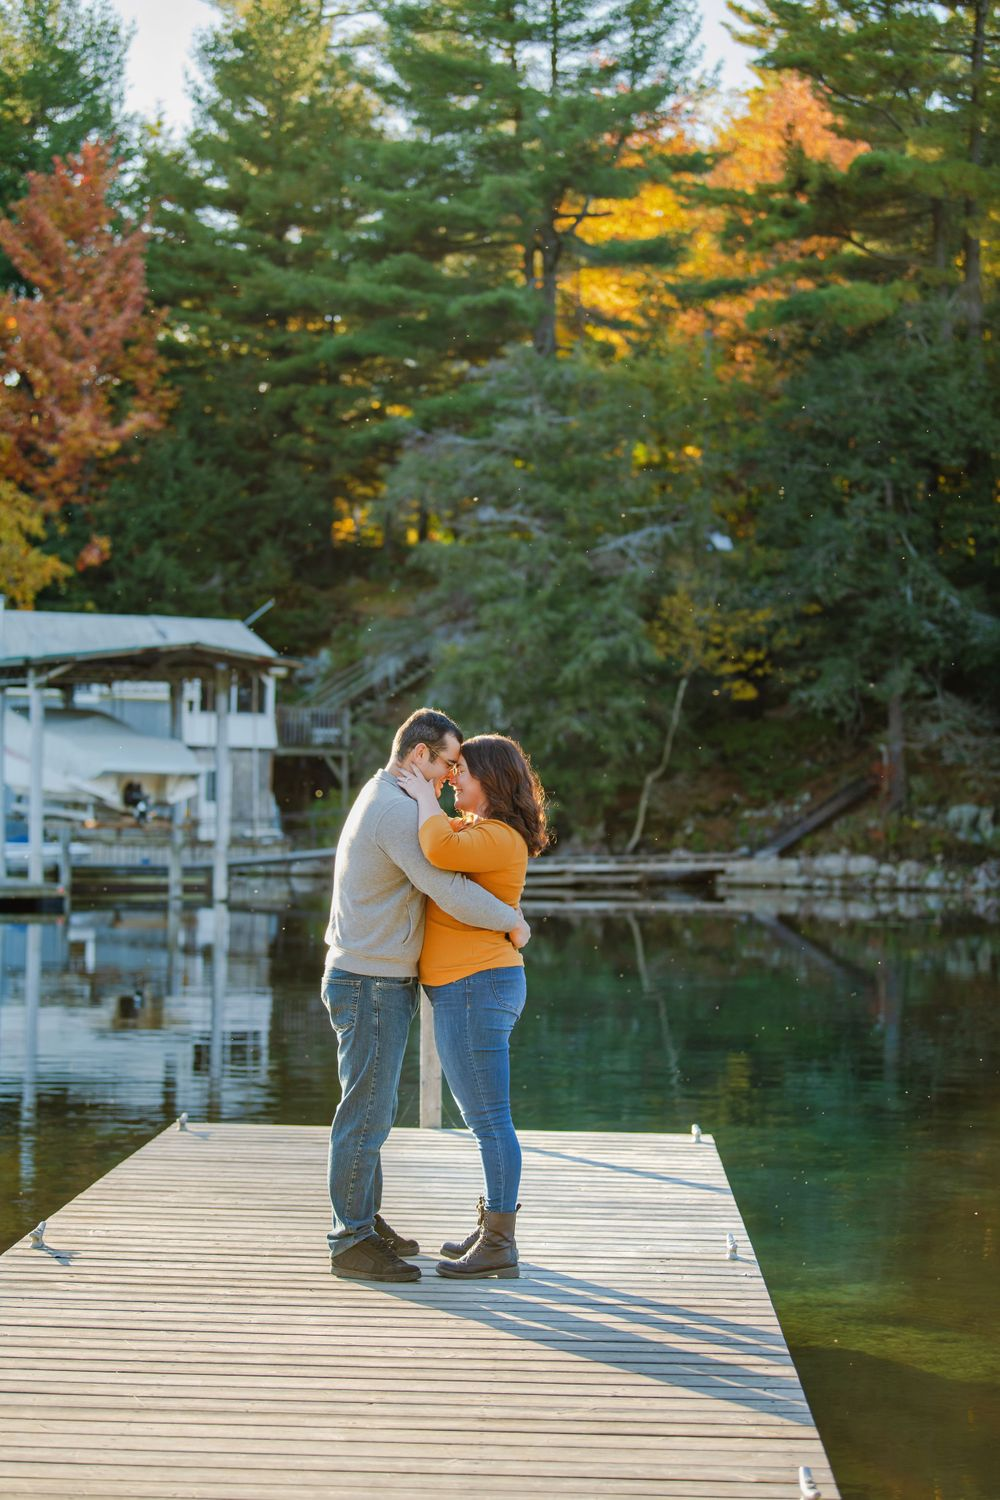 Kingston Couples Photography - Couple on dock